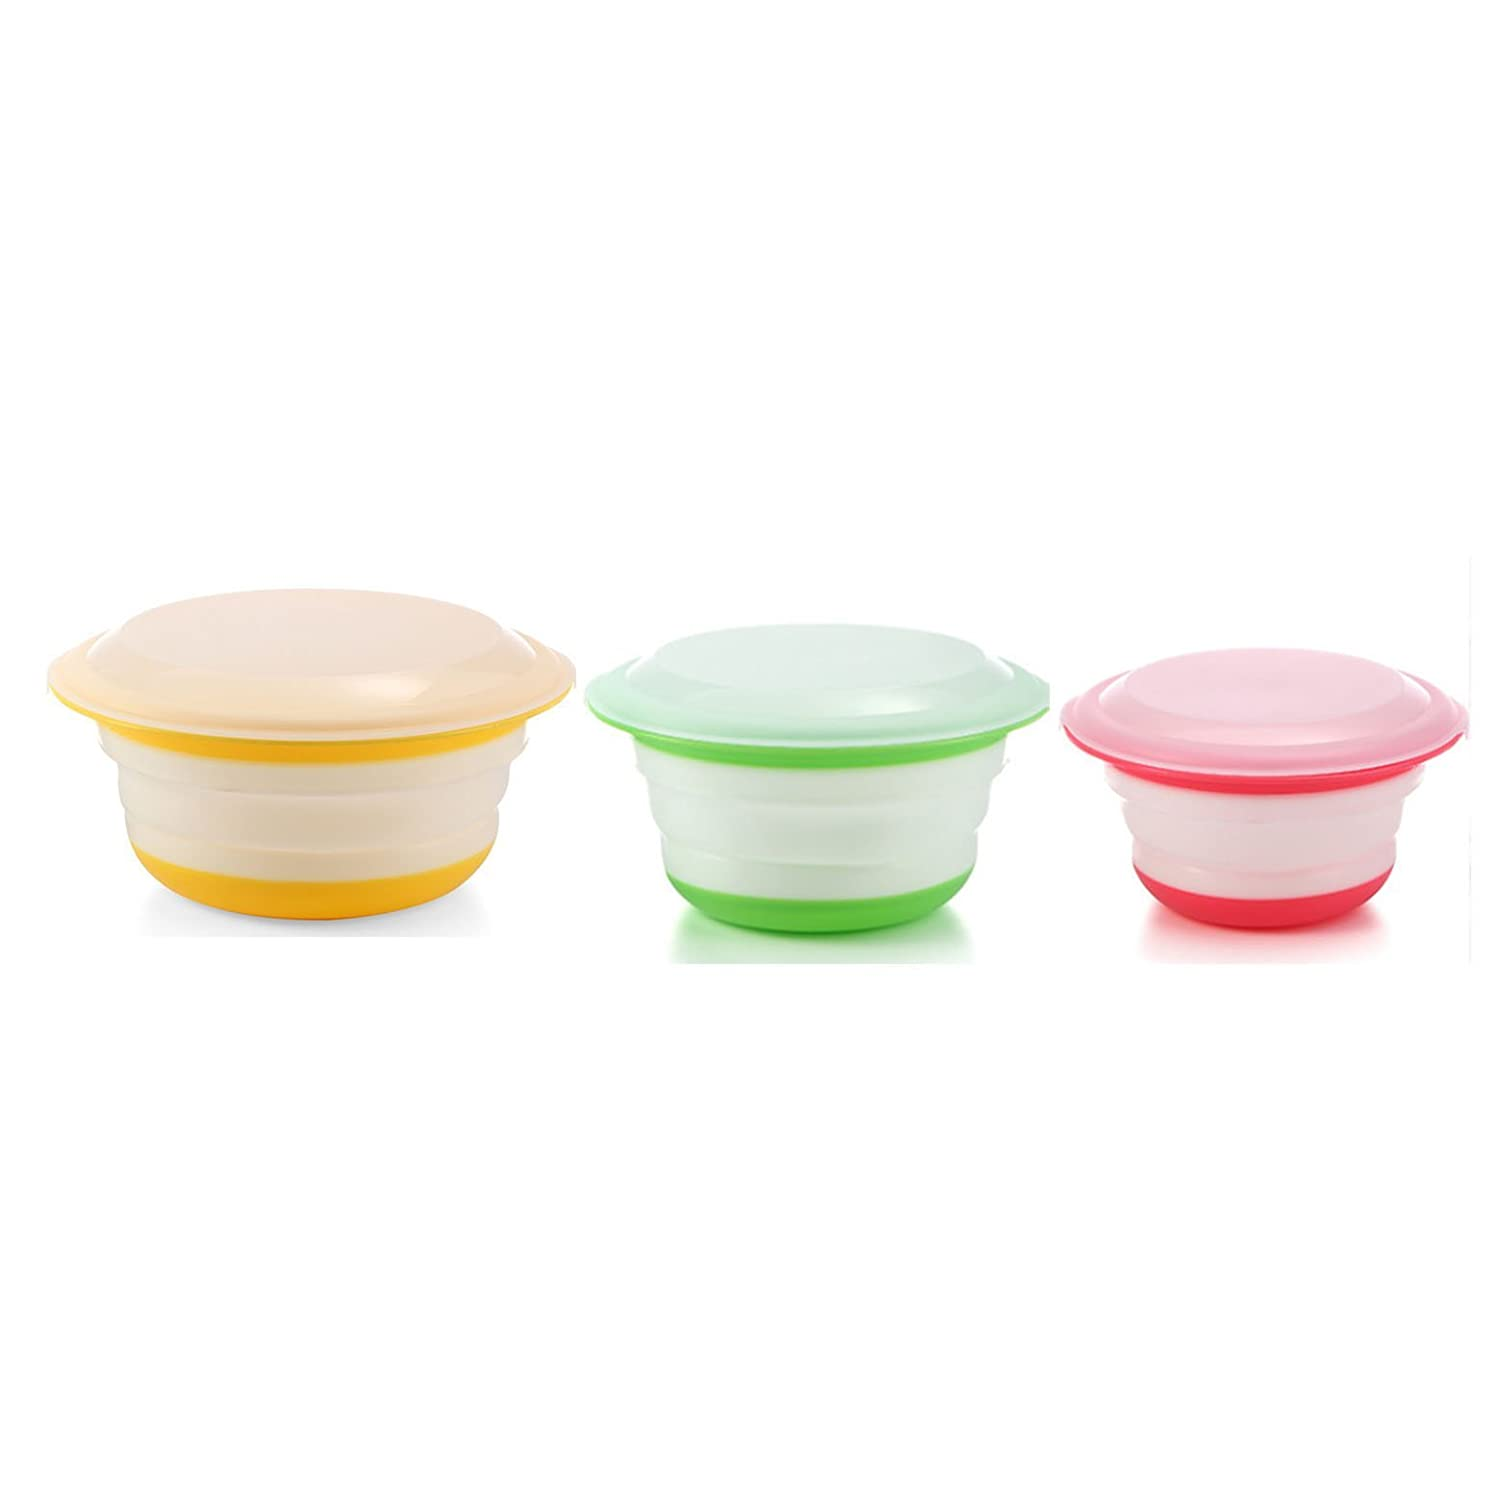 Neeshow Silicone Collapsible Storage Bowls With Lids Set